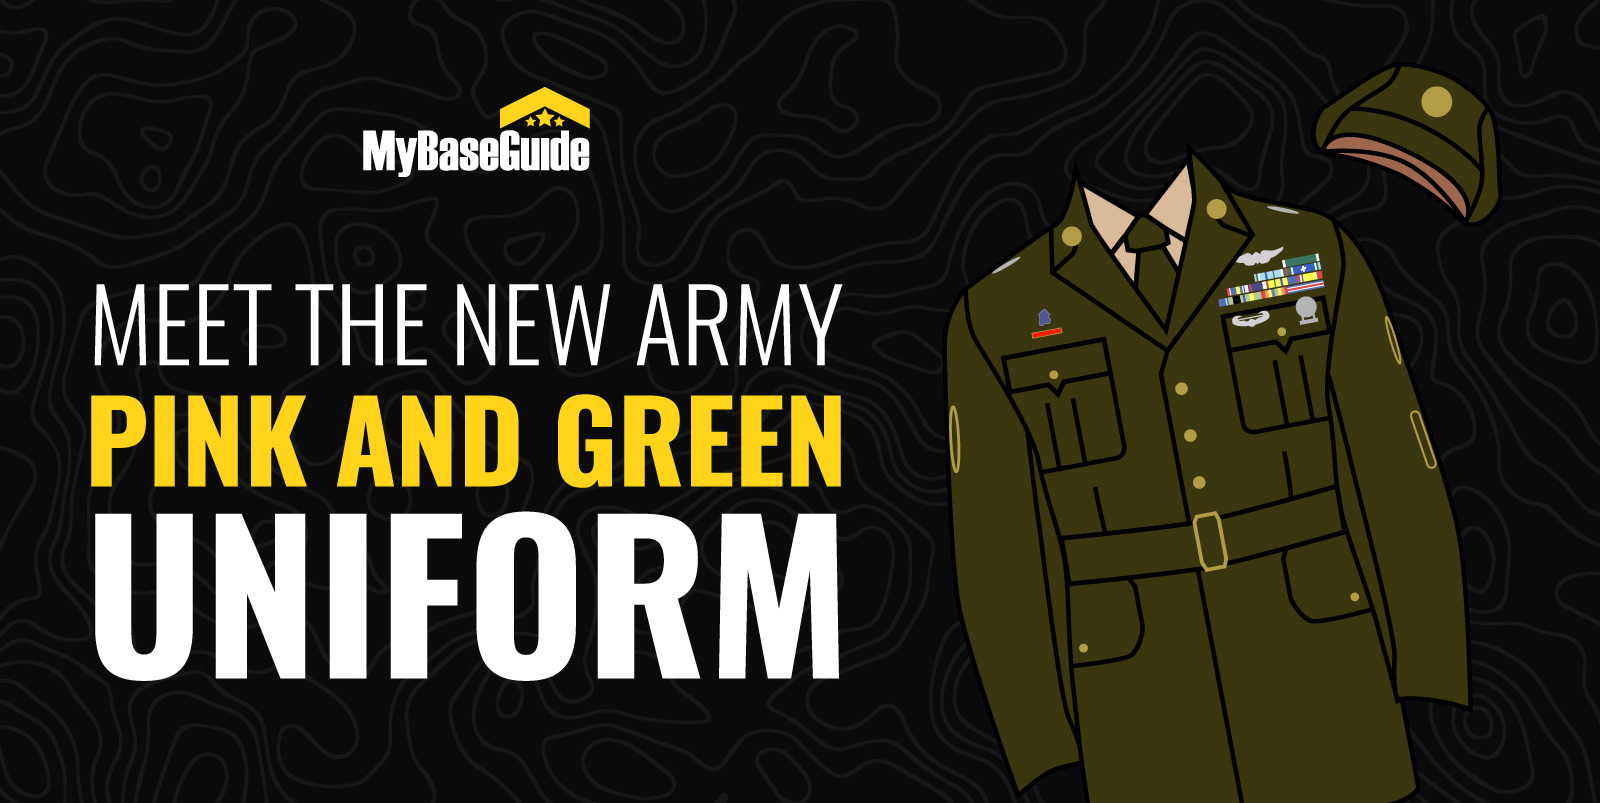 Meet the New Army Pink and Green Uniform